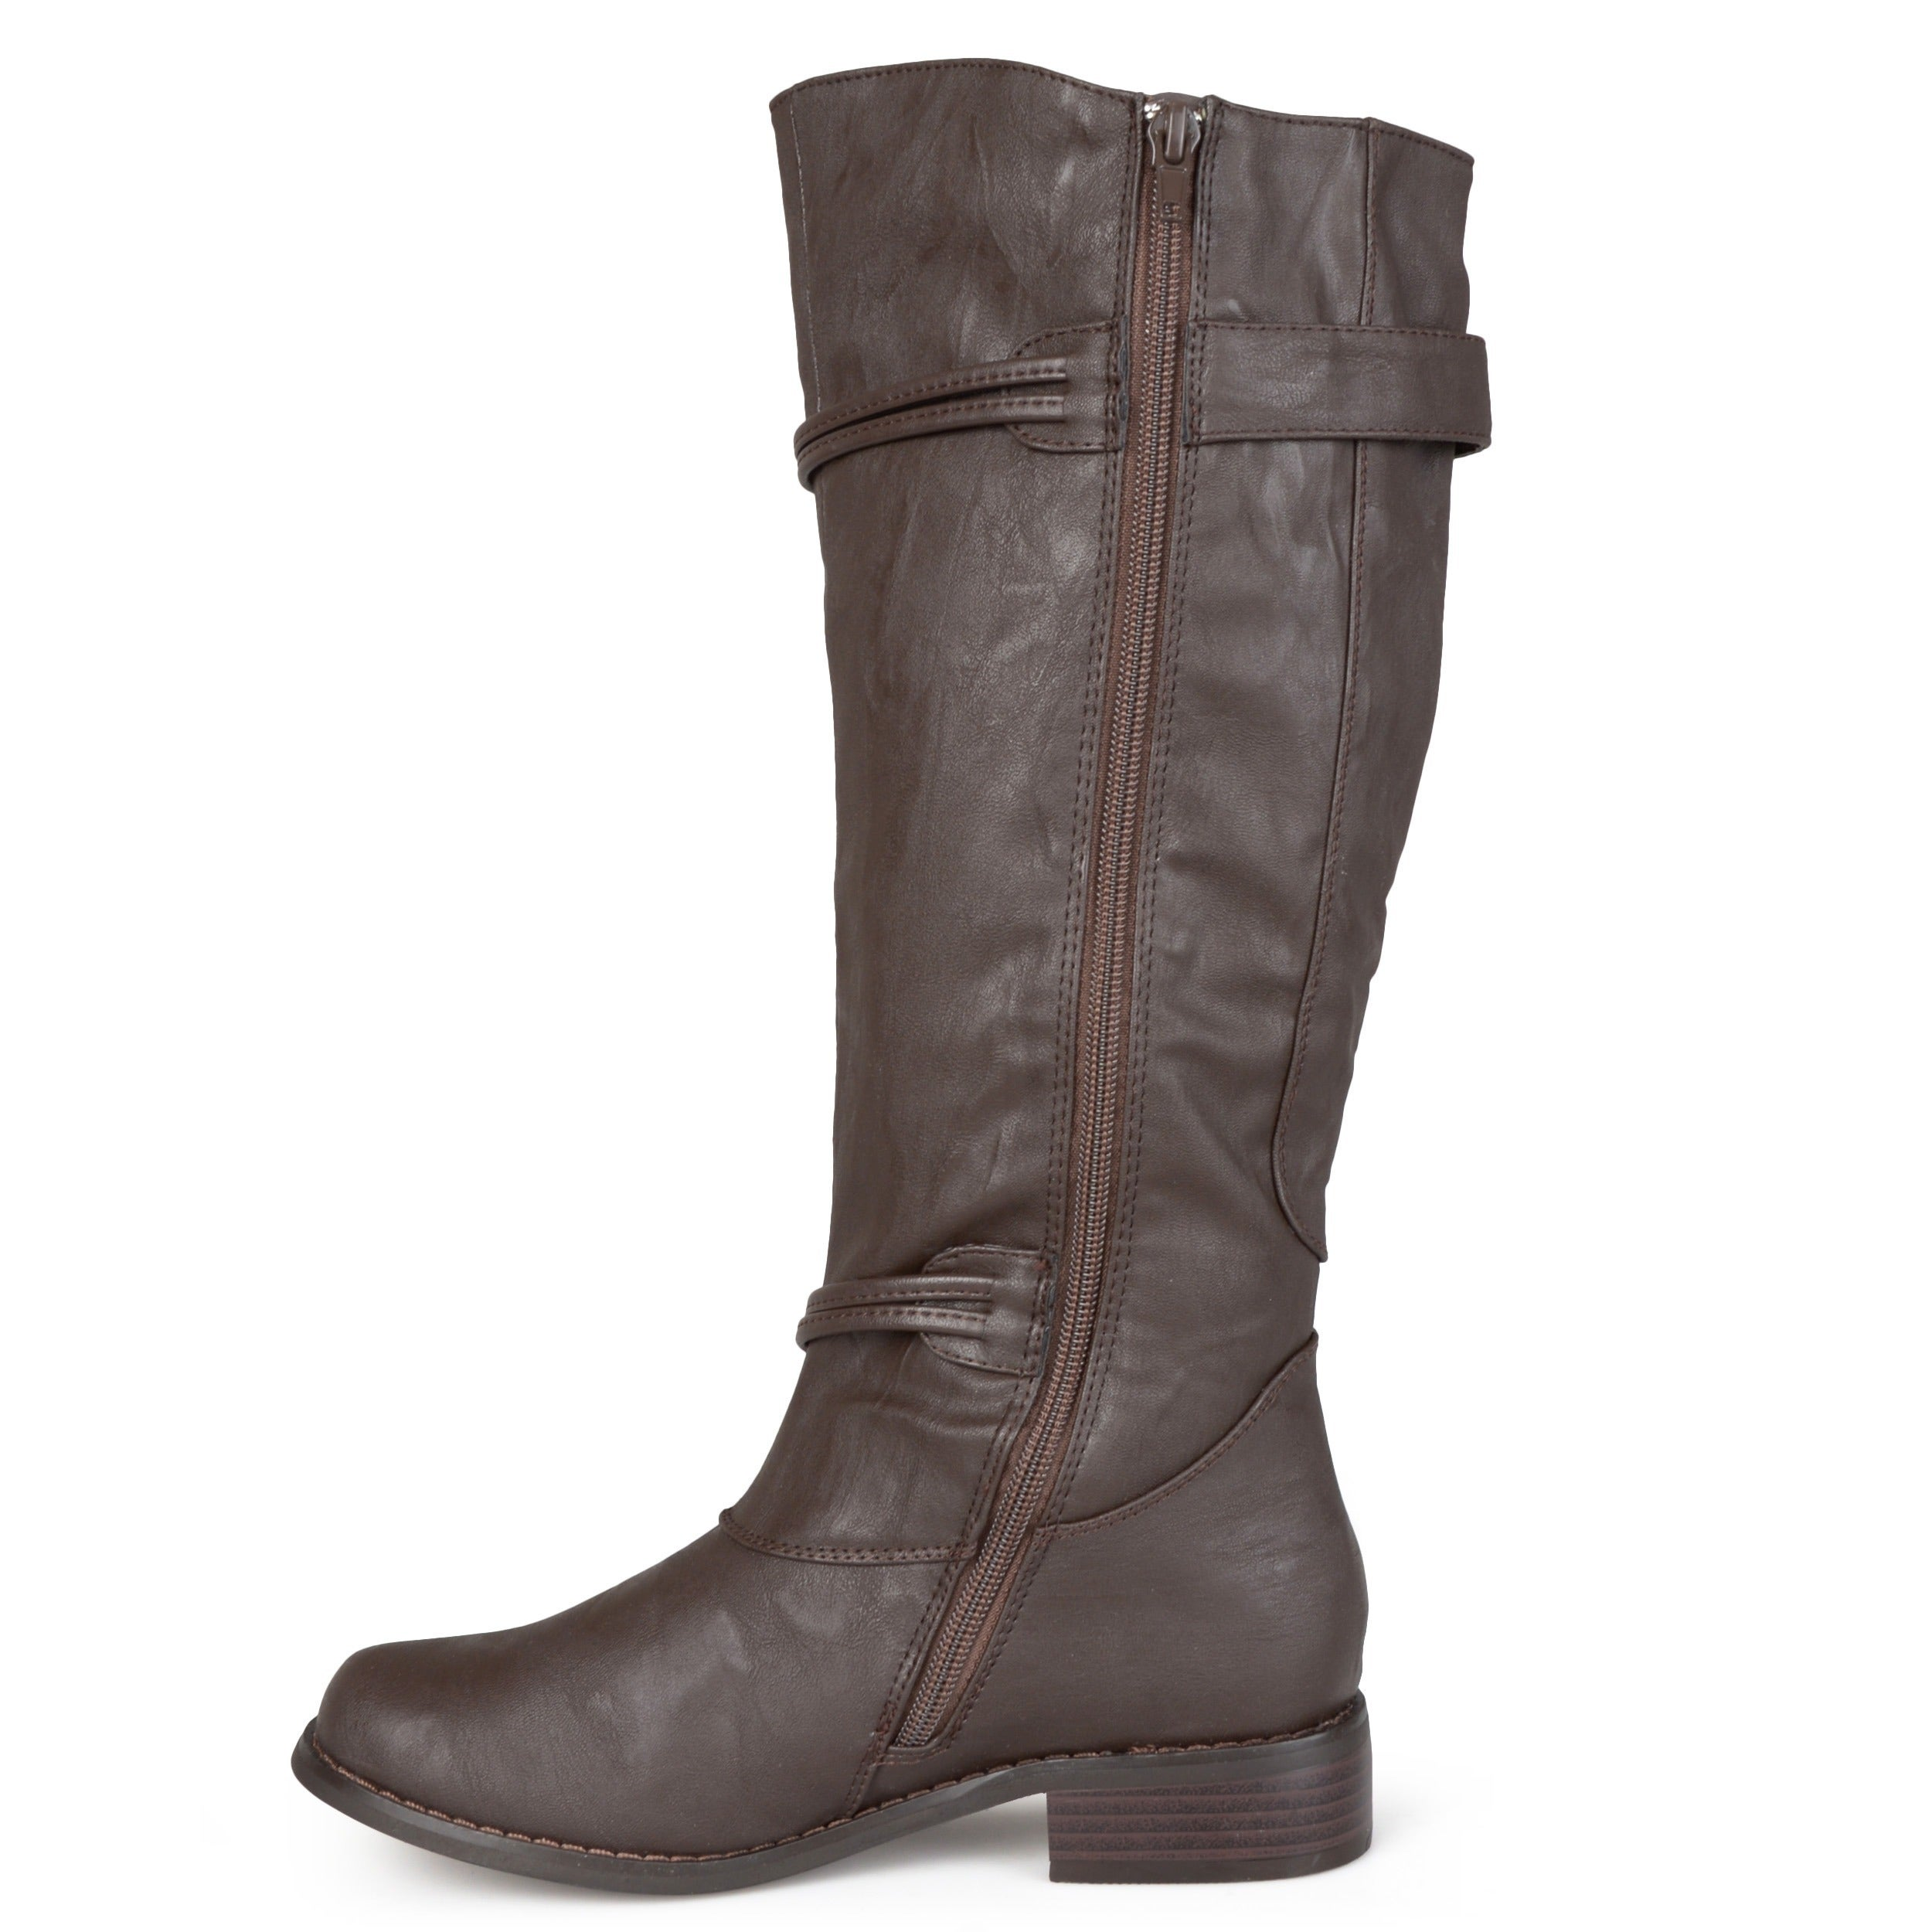 b8a7ff5aea7 Journee Collection Women s  Harley  Regular and Wide-calf Ankle-strap  Buckle Knee-high Riding Boot